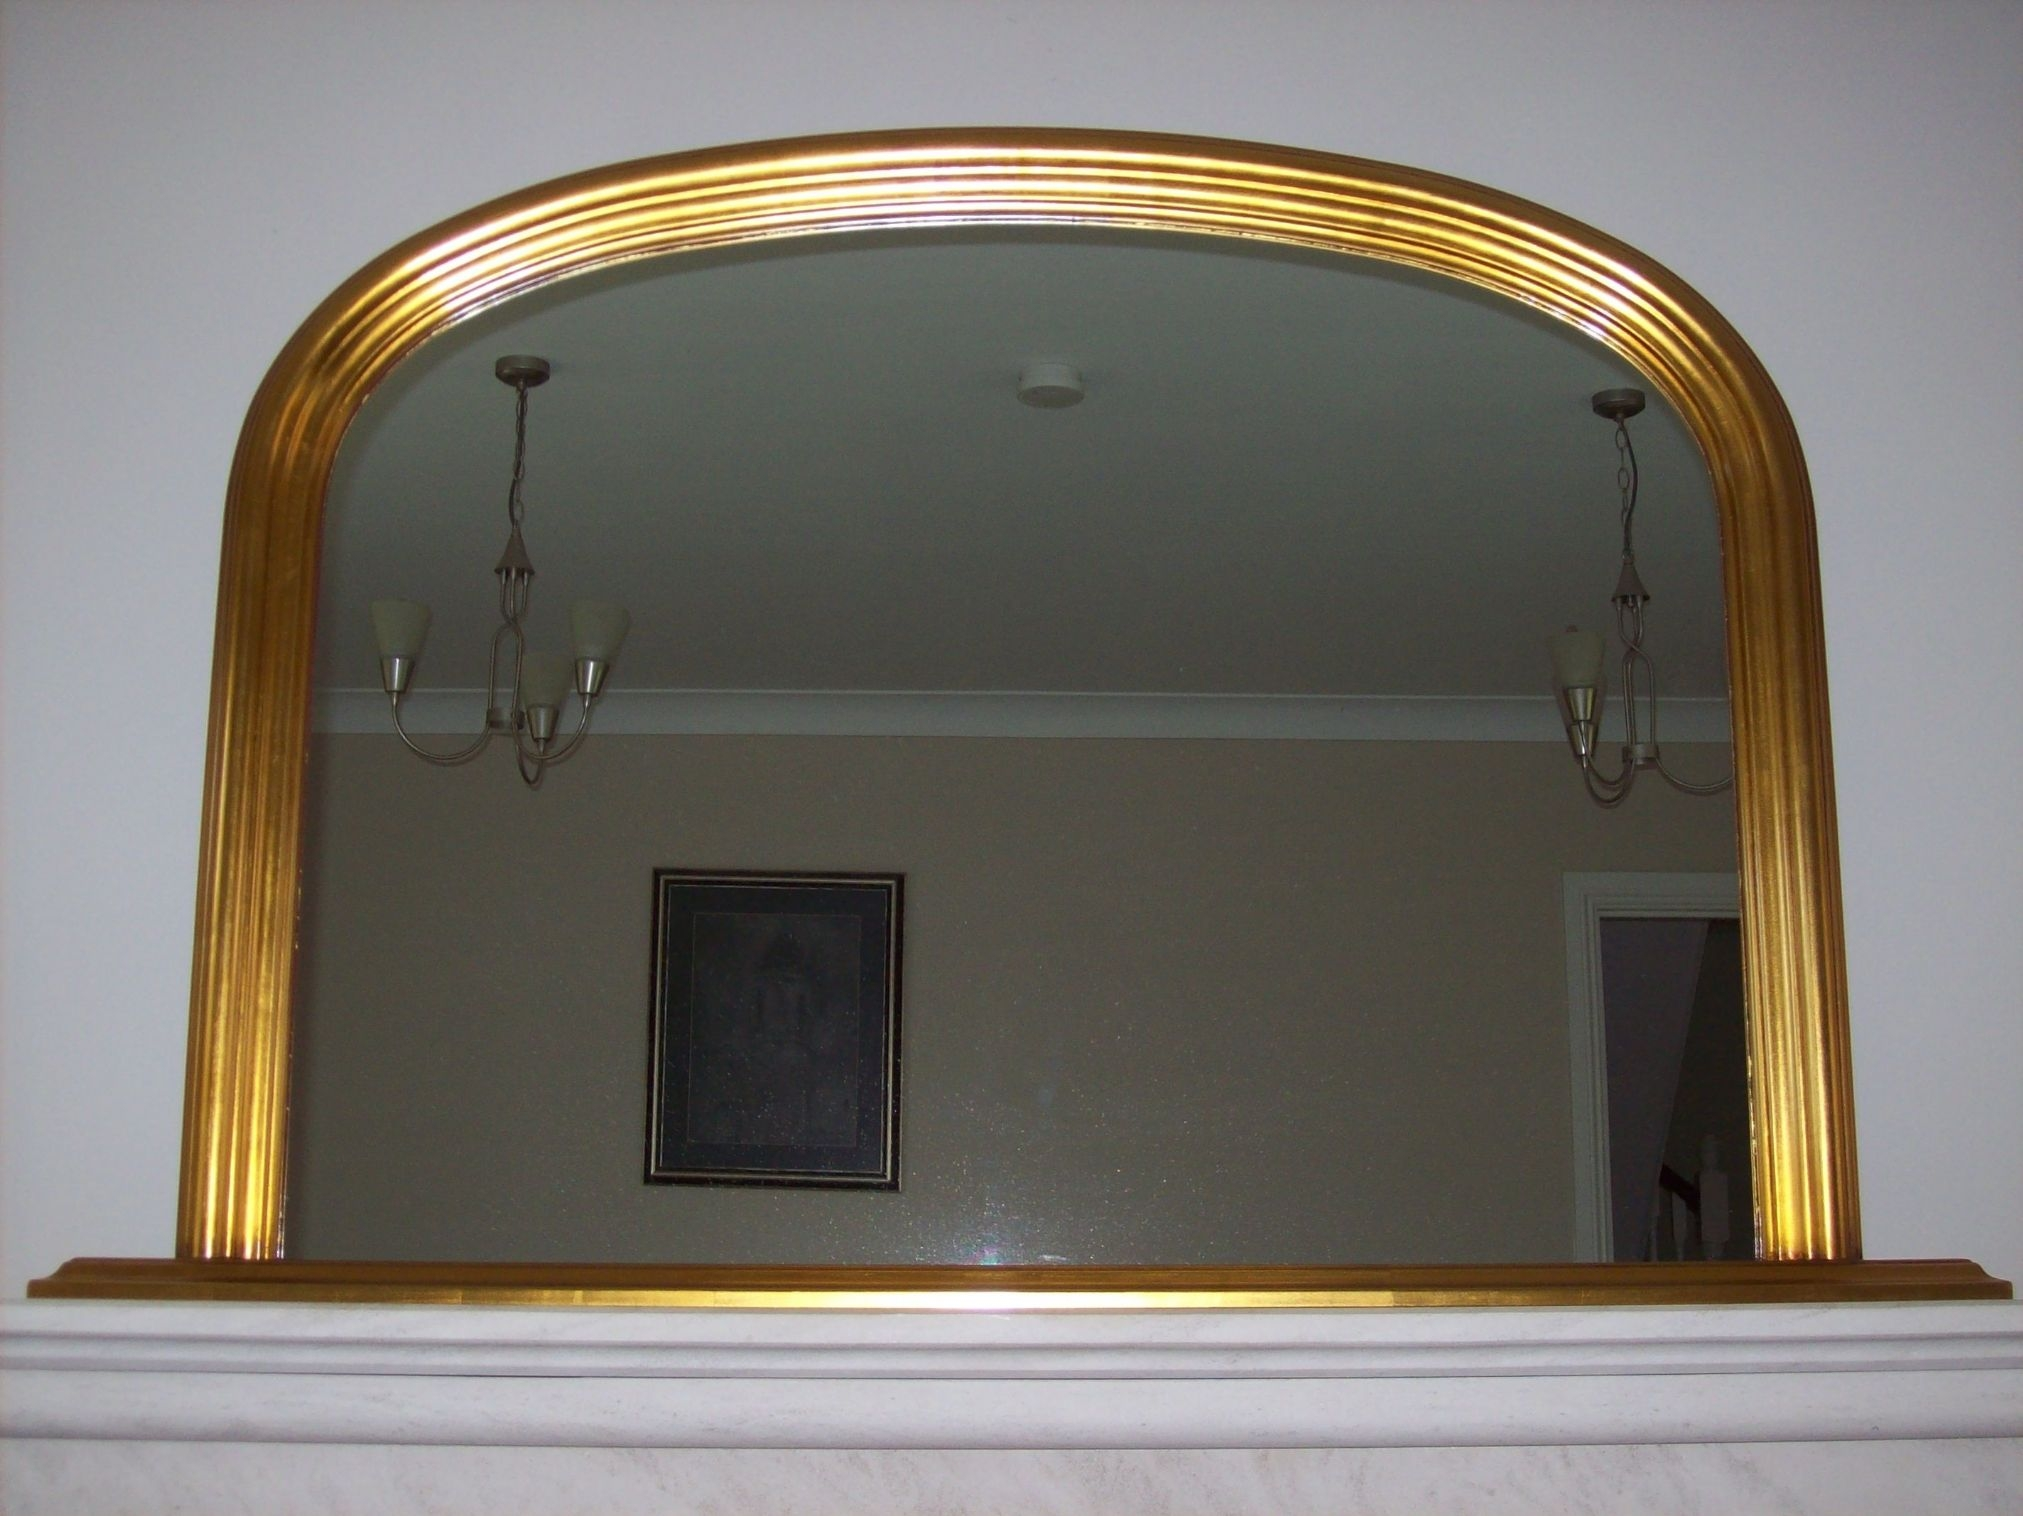 Gold Arched Overmantle Mirror With Regard To Overmantle Mirrors (Image 5 of 15)